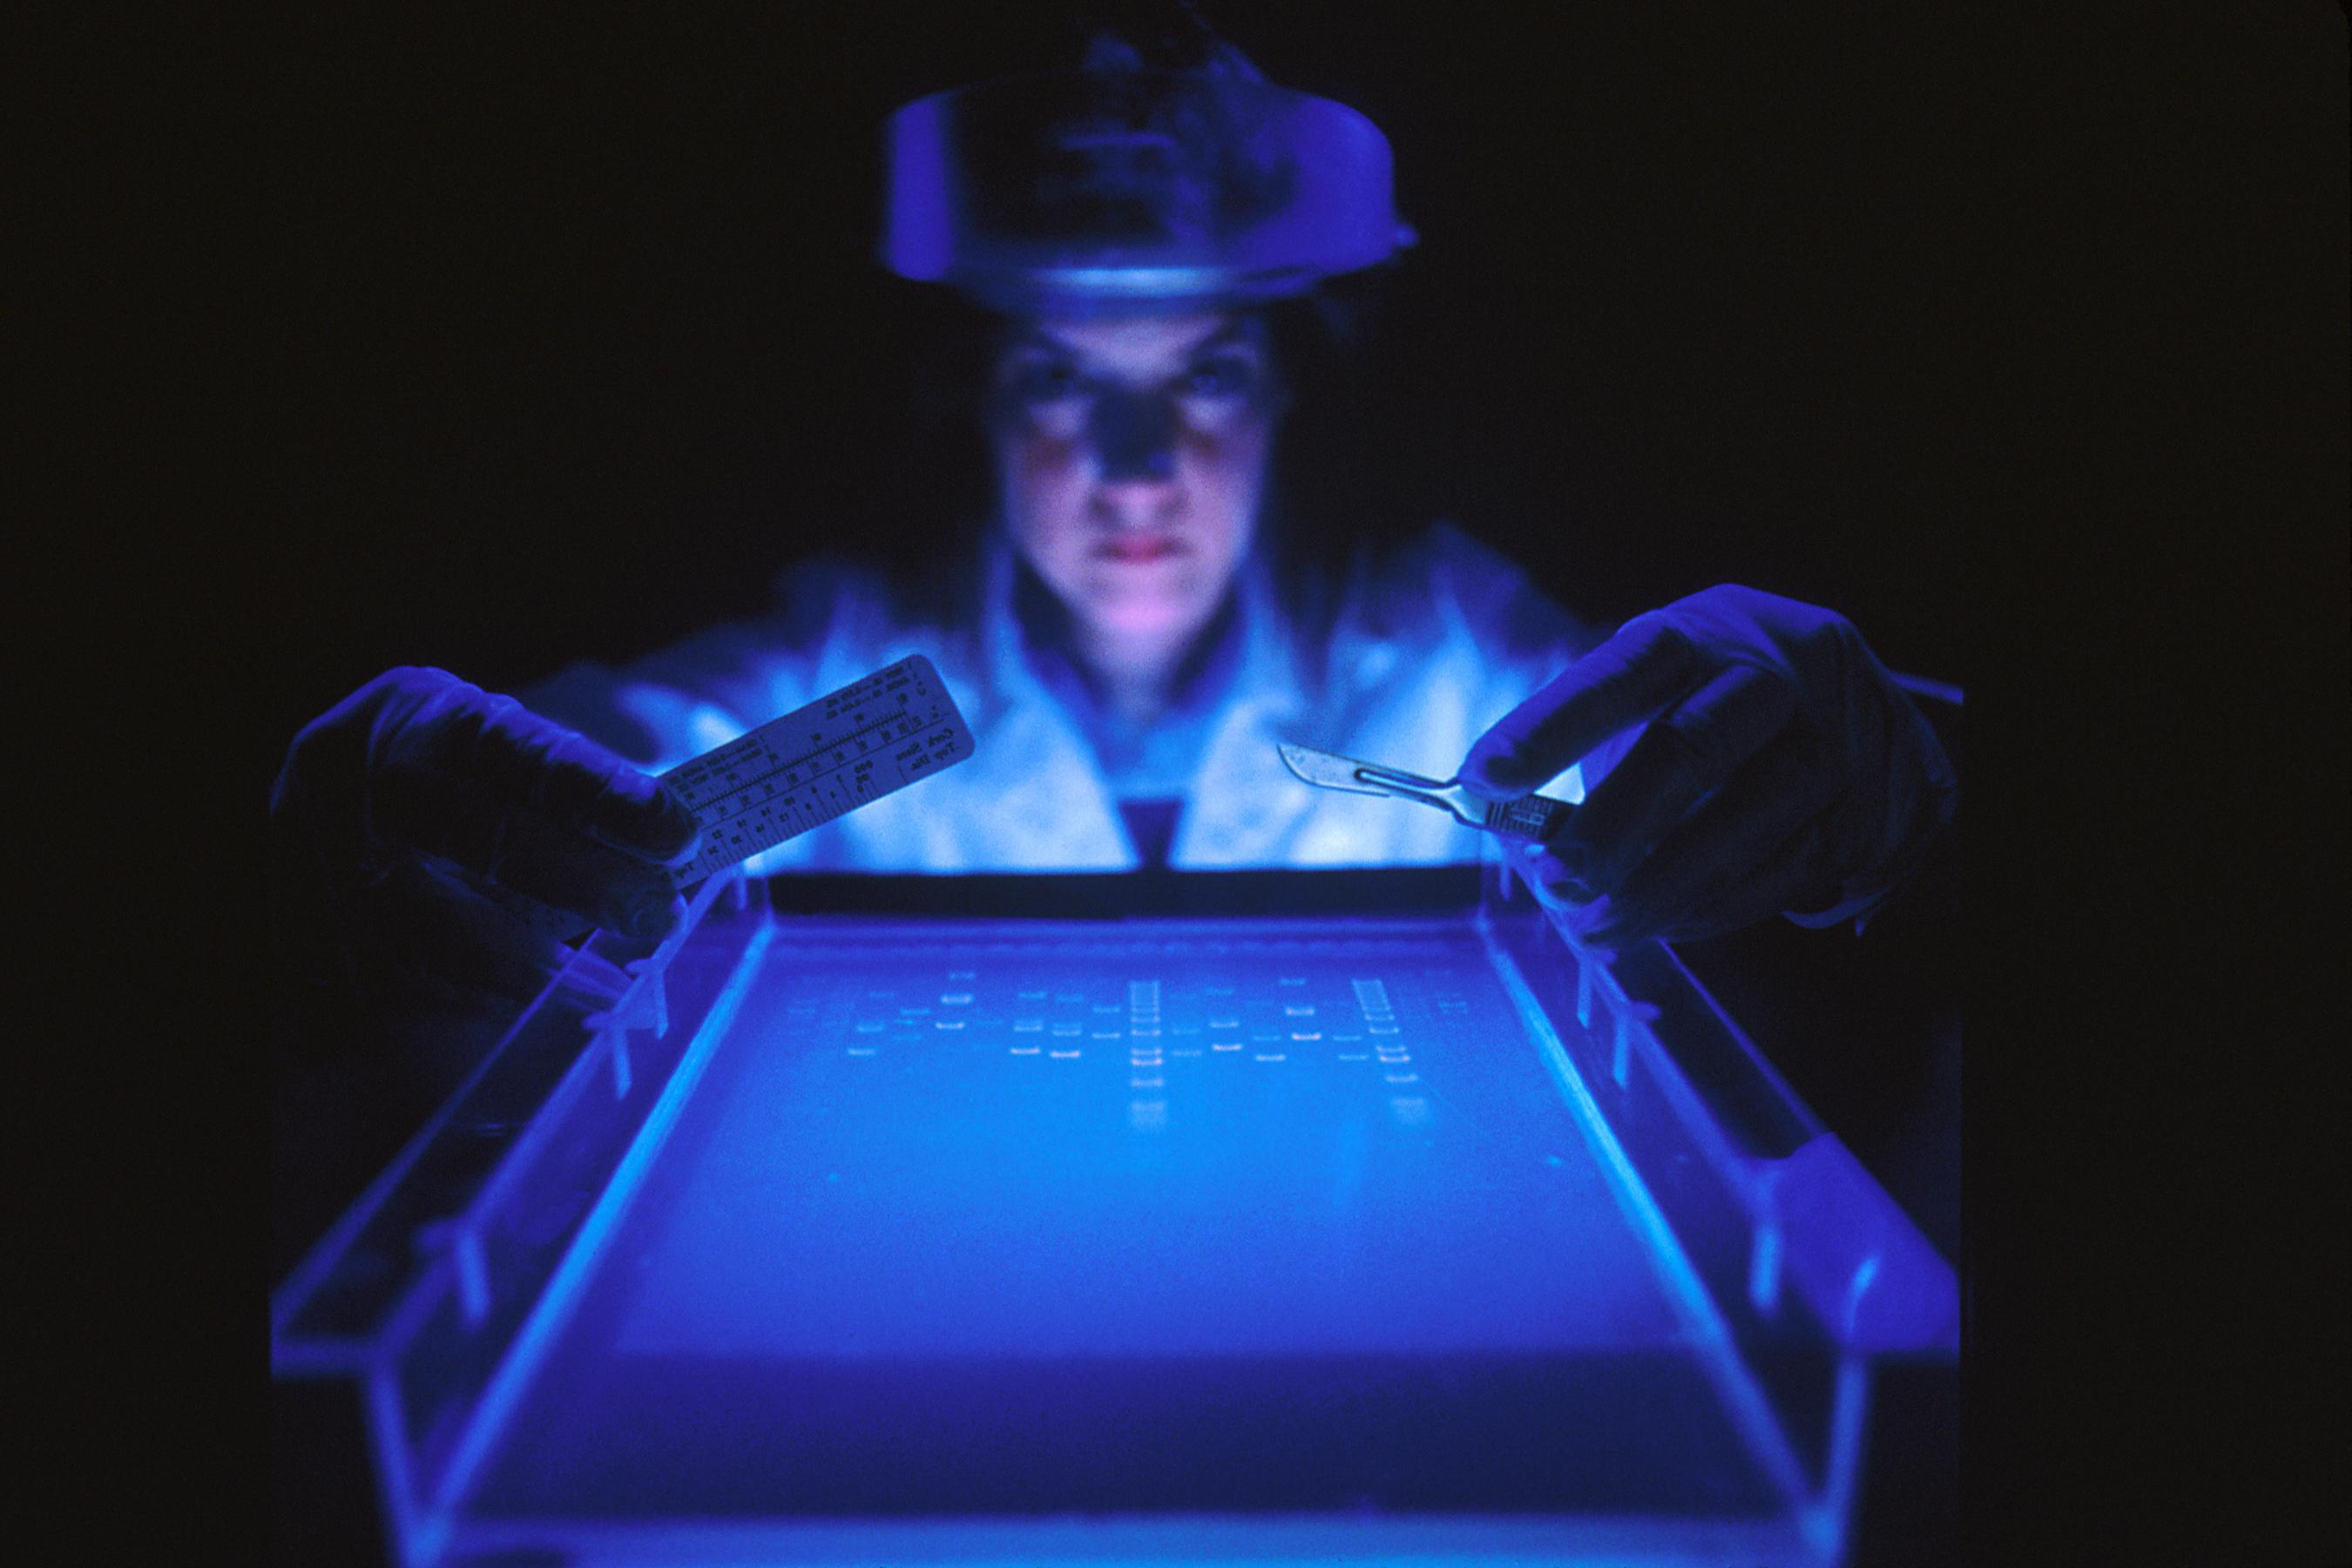 A female scientist looks closely at a dye marker on agarose gel used to separate DNA